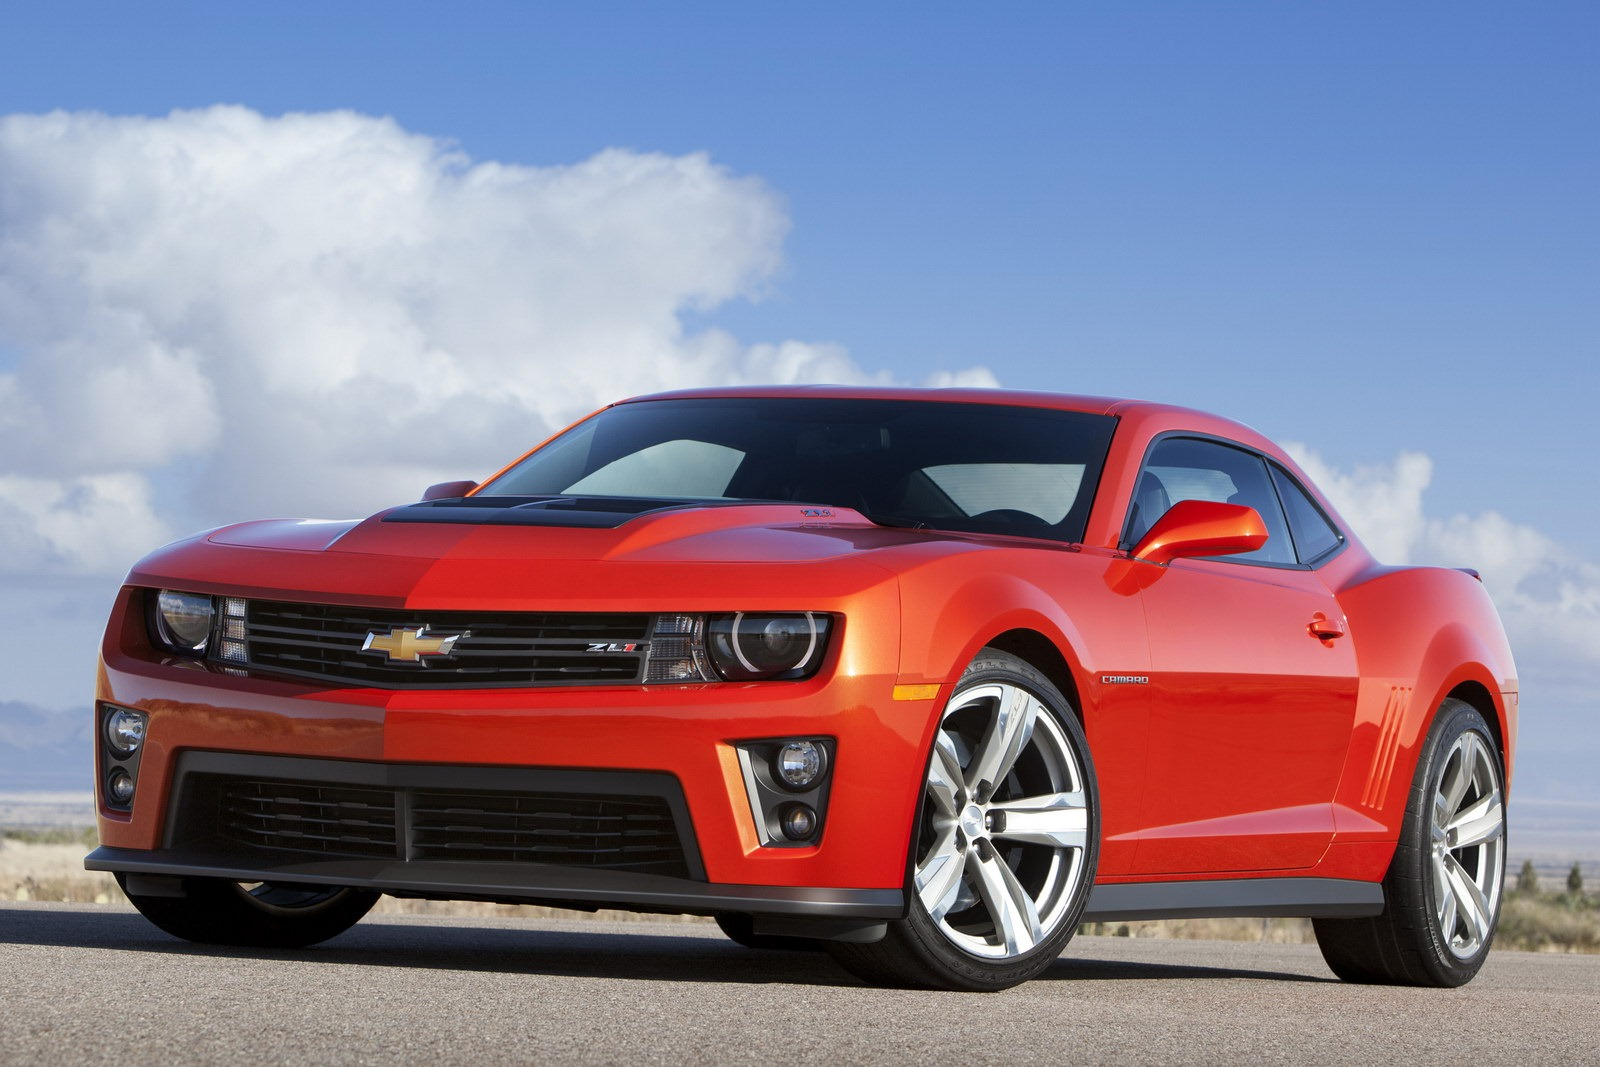 2014 Chevy Camaro Zl1 Vs 2013 Dodge Challenger Srt8 Vs